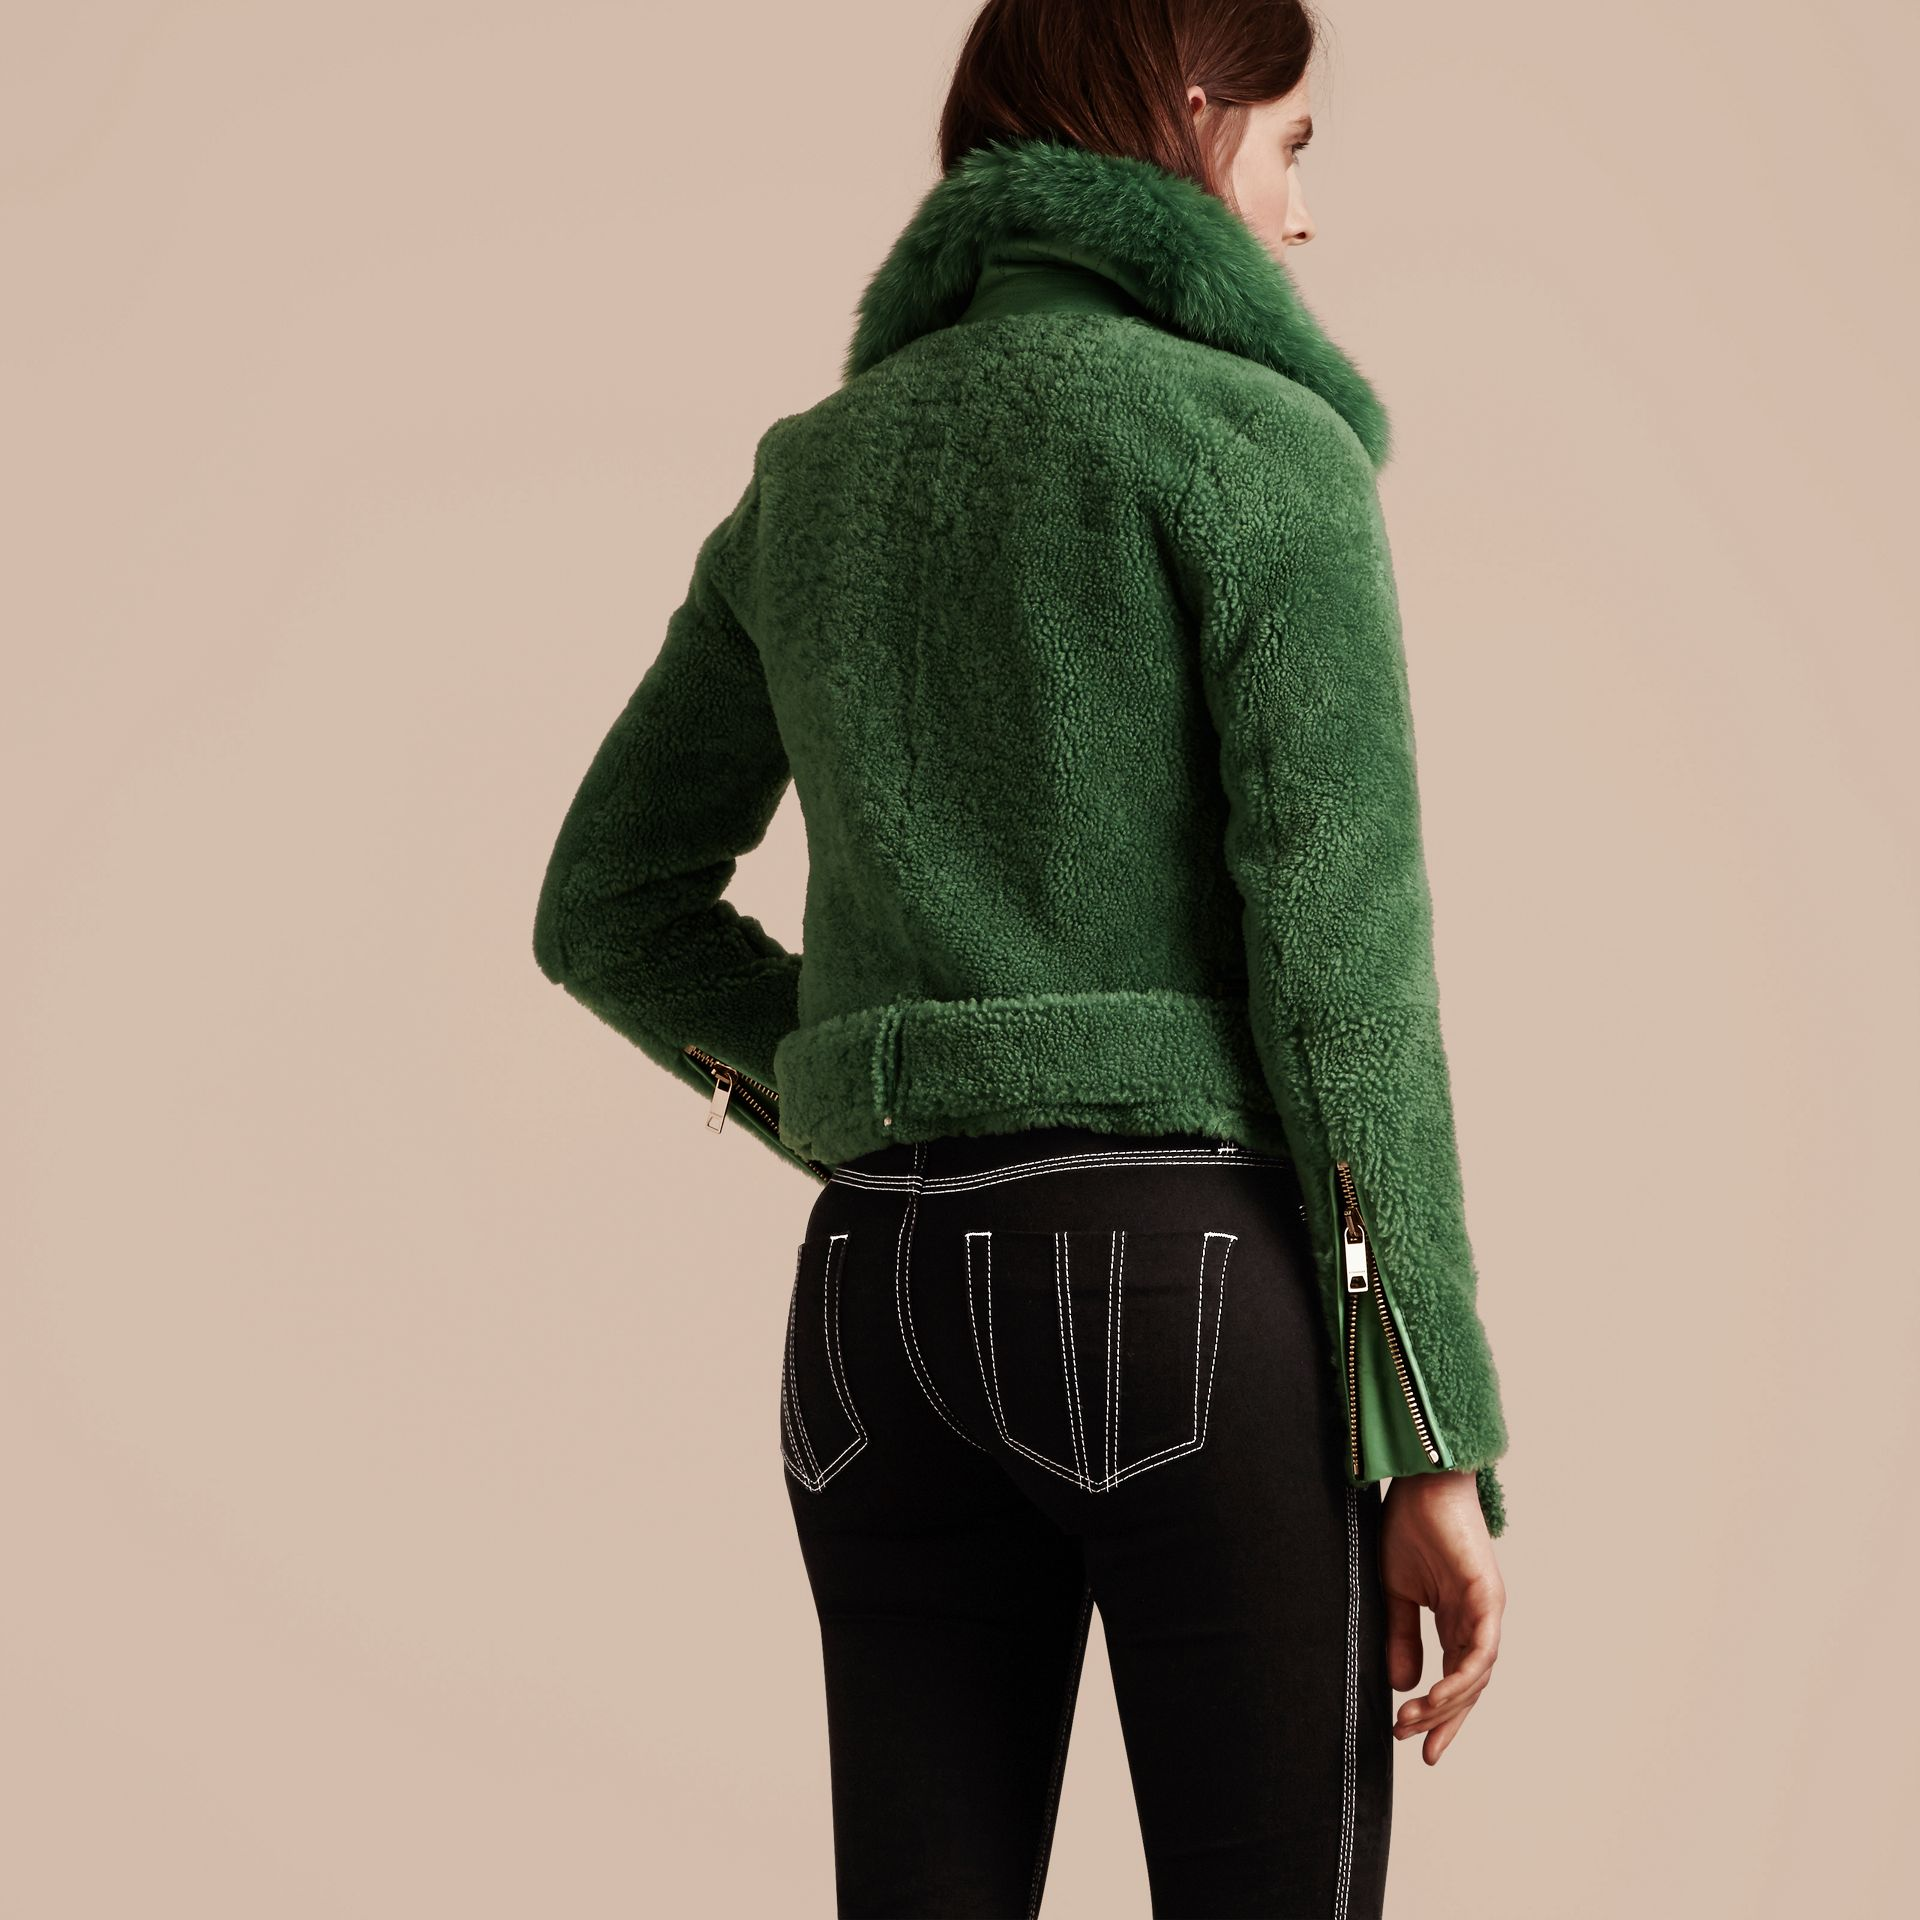 Pigment green Shearling Biker Jacket with Fur Collar Pigment Green - gallery image 3